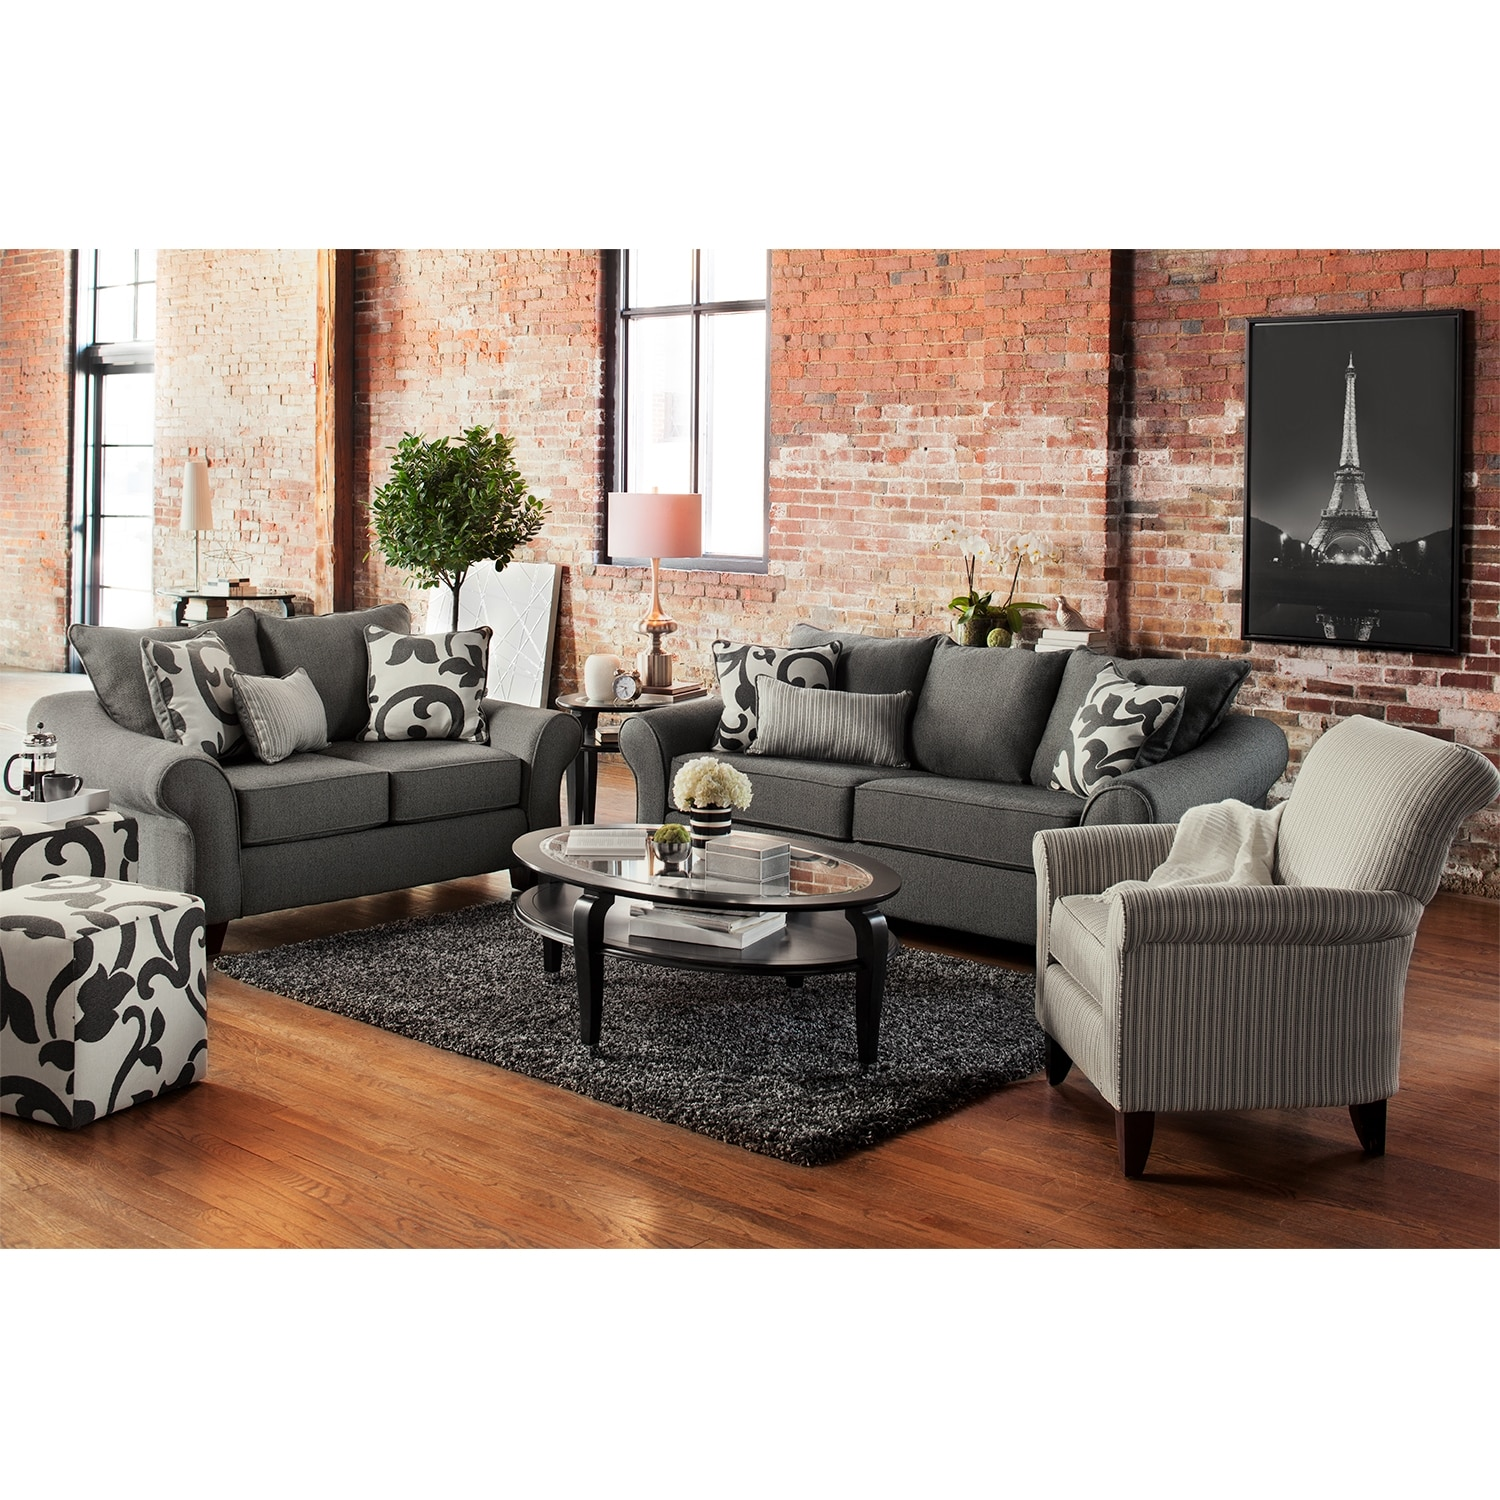 Colette full memory foam sleeper sofa and accent chair set for Signature furniture